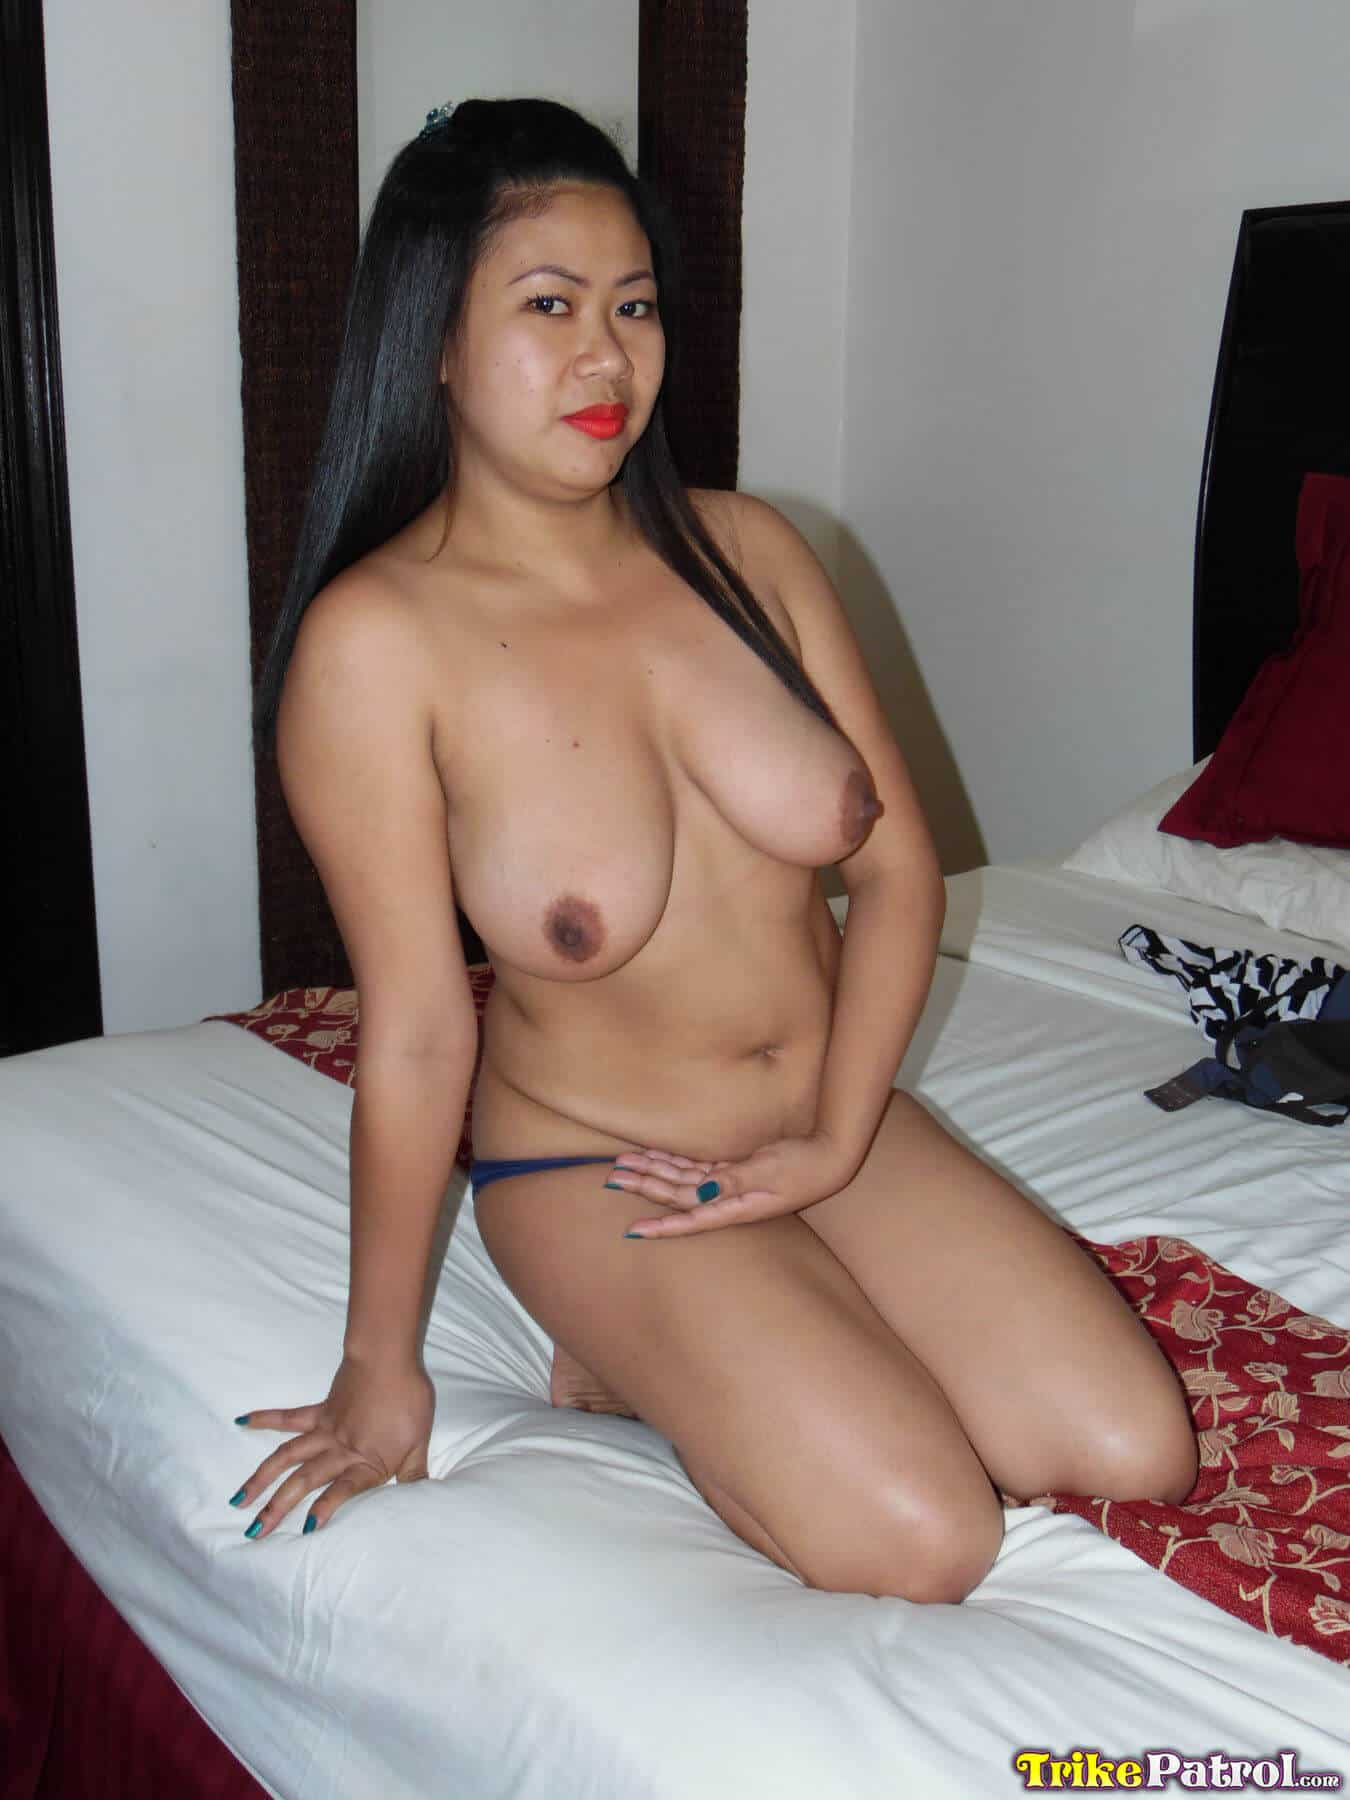 19 year old filipina girl getting naked and her boobs sucked 4